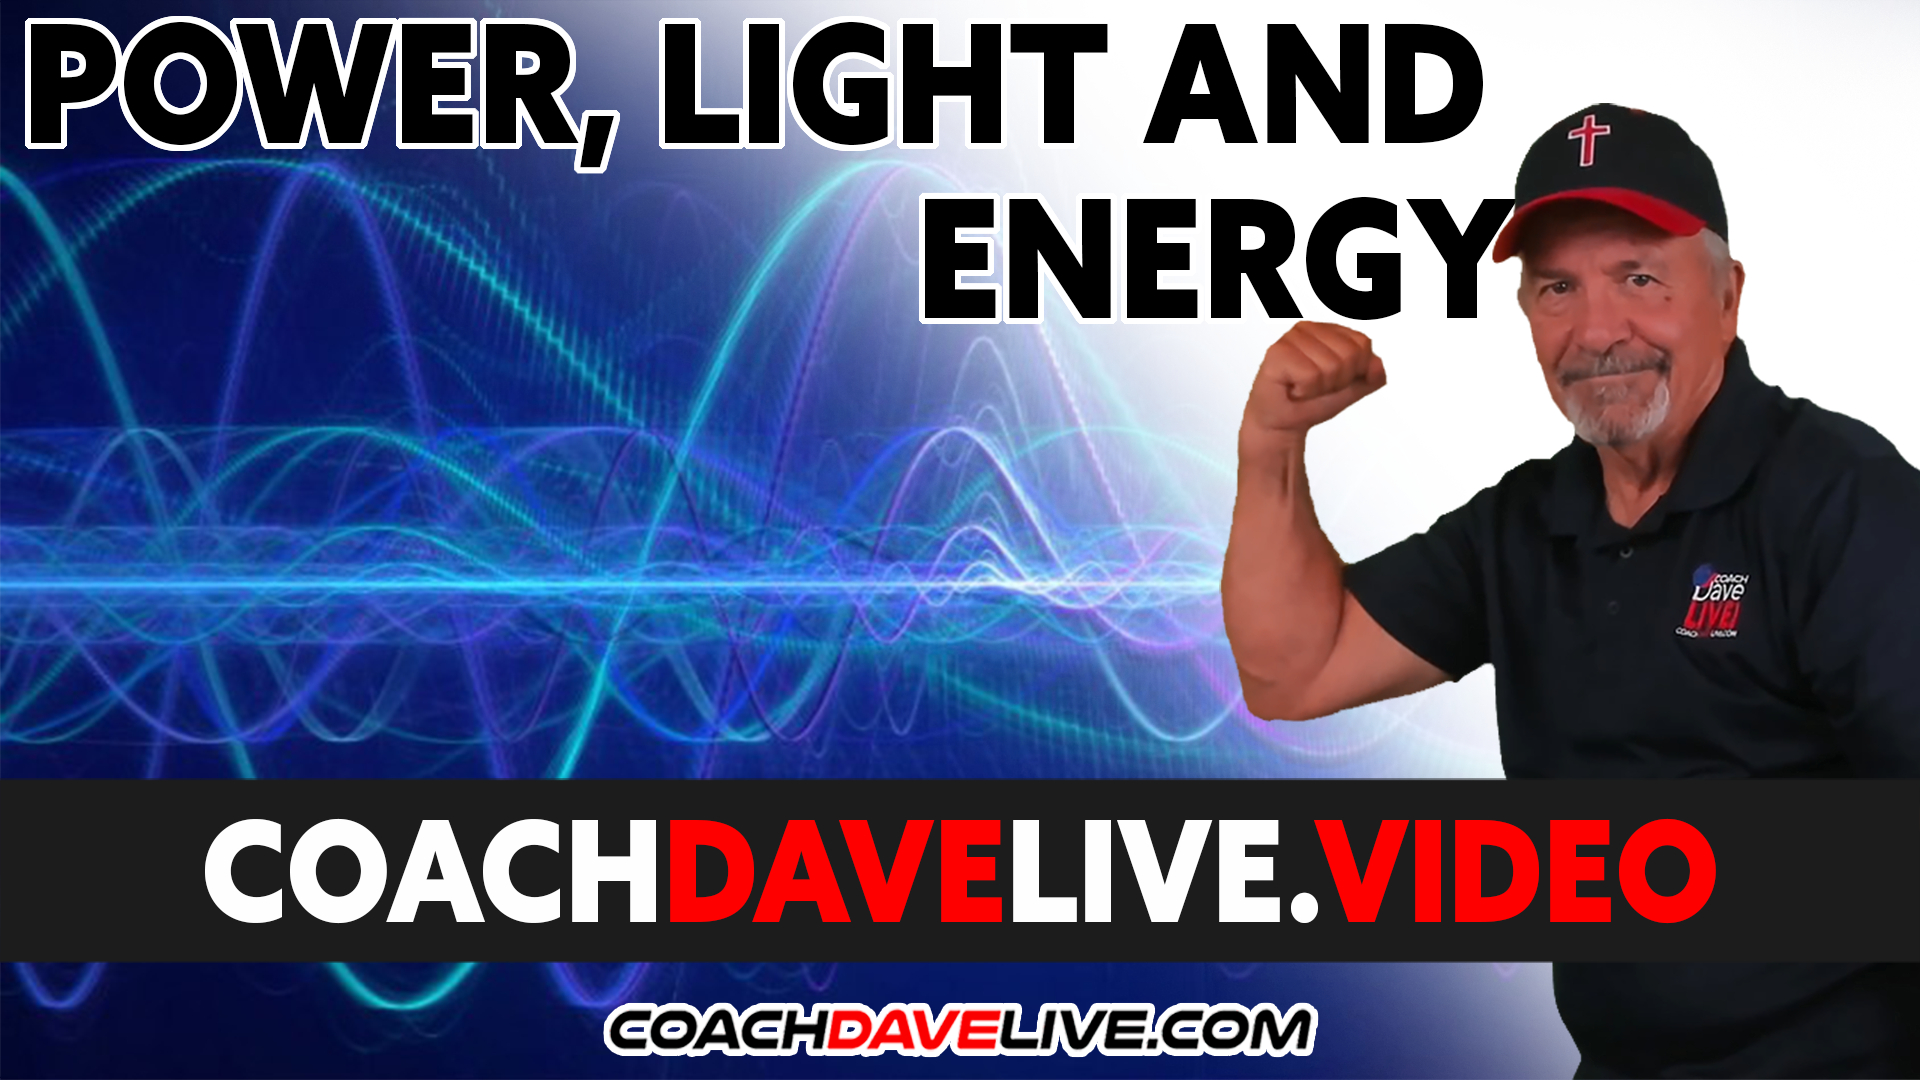 Coach Dave LIVE | 9-29-2021 | POWER, LIGHT AND ENERGY